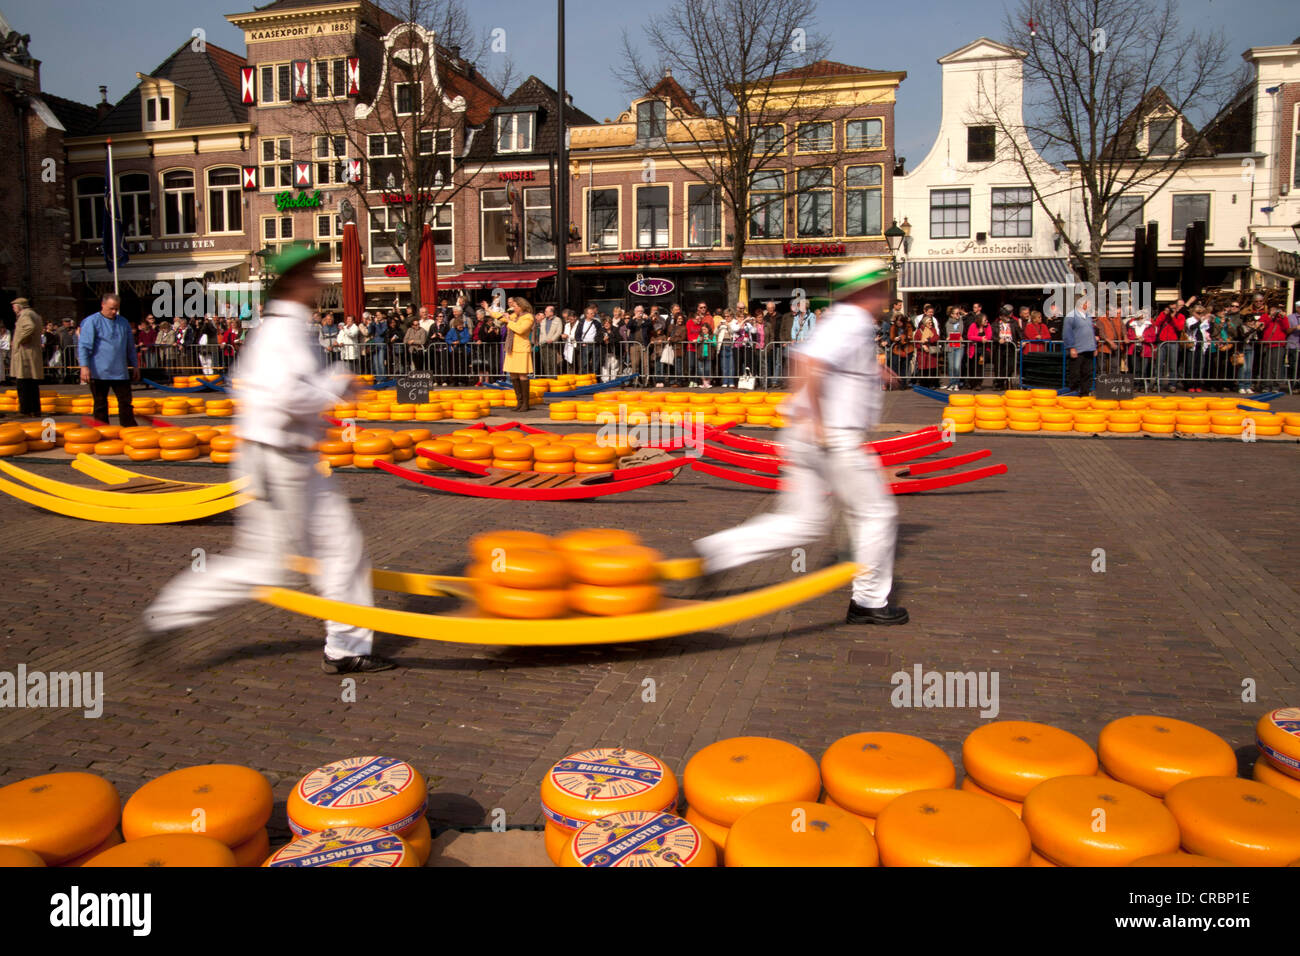 Cheese carriers on the cheese market in Alkmaar, North Holland, Netherlands, Europe - Stock Image